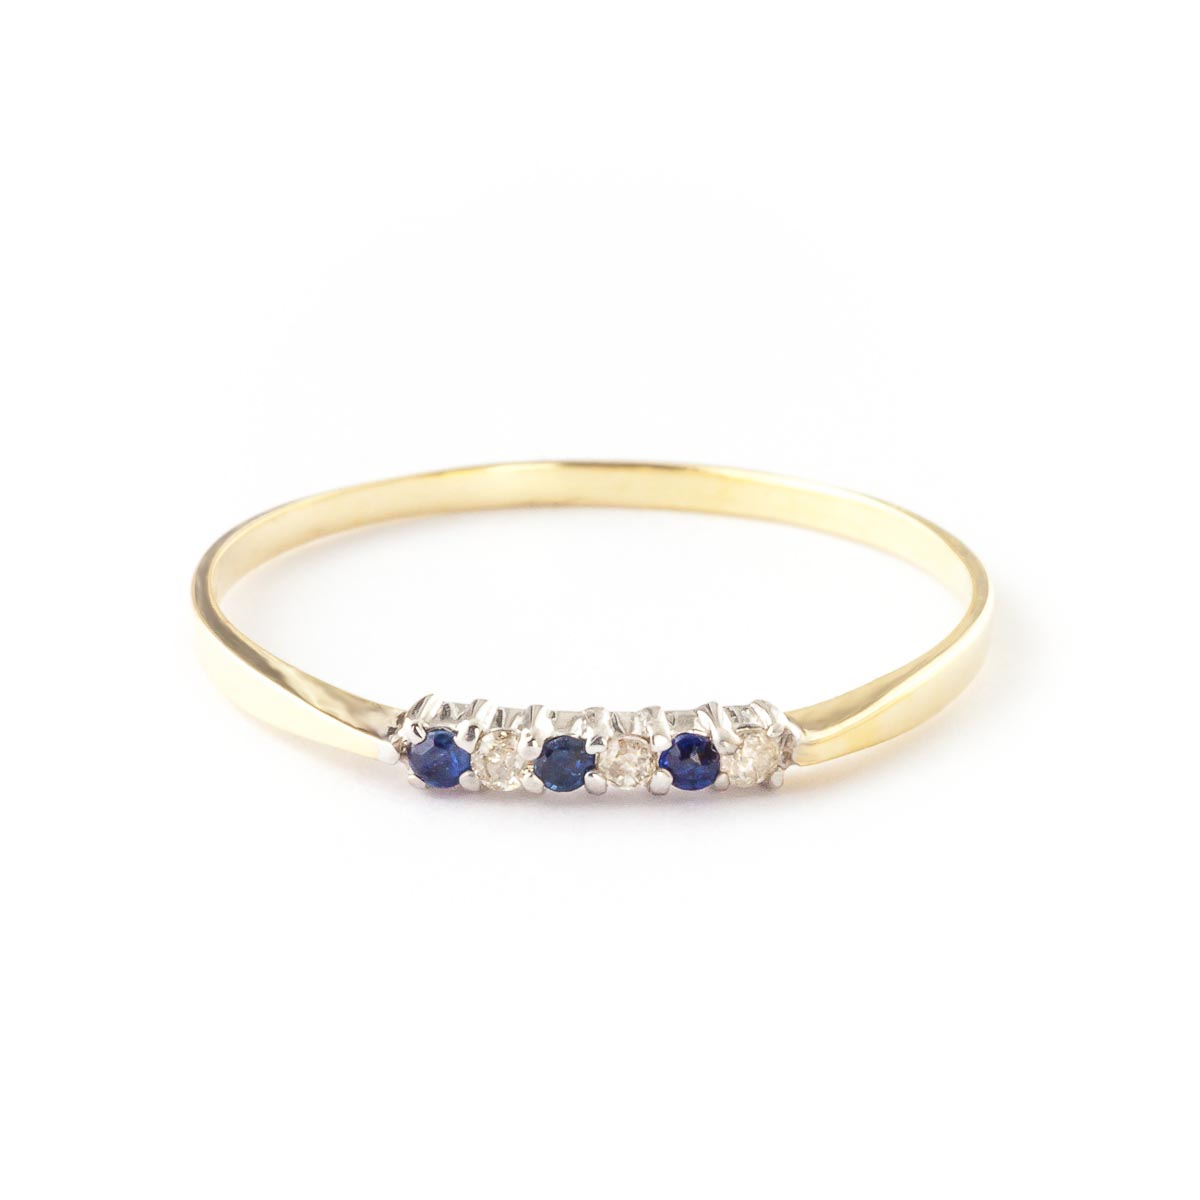 Diamond & Sapphire Eternity Ring in 9ct Gold